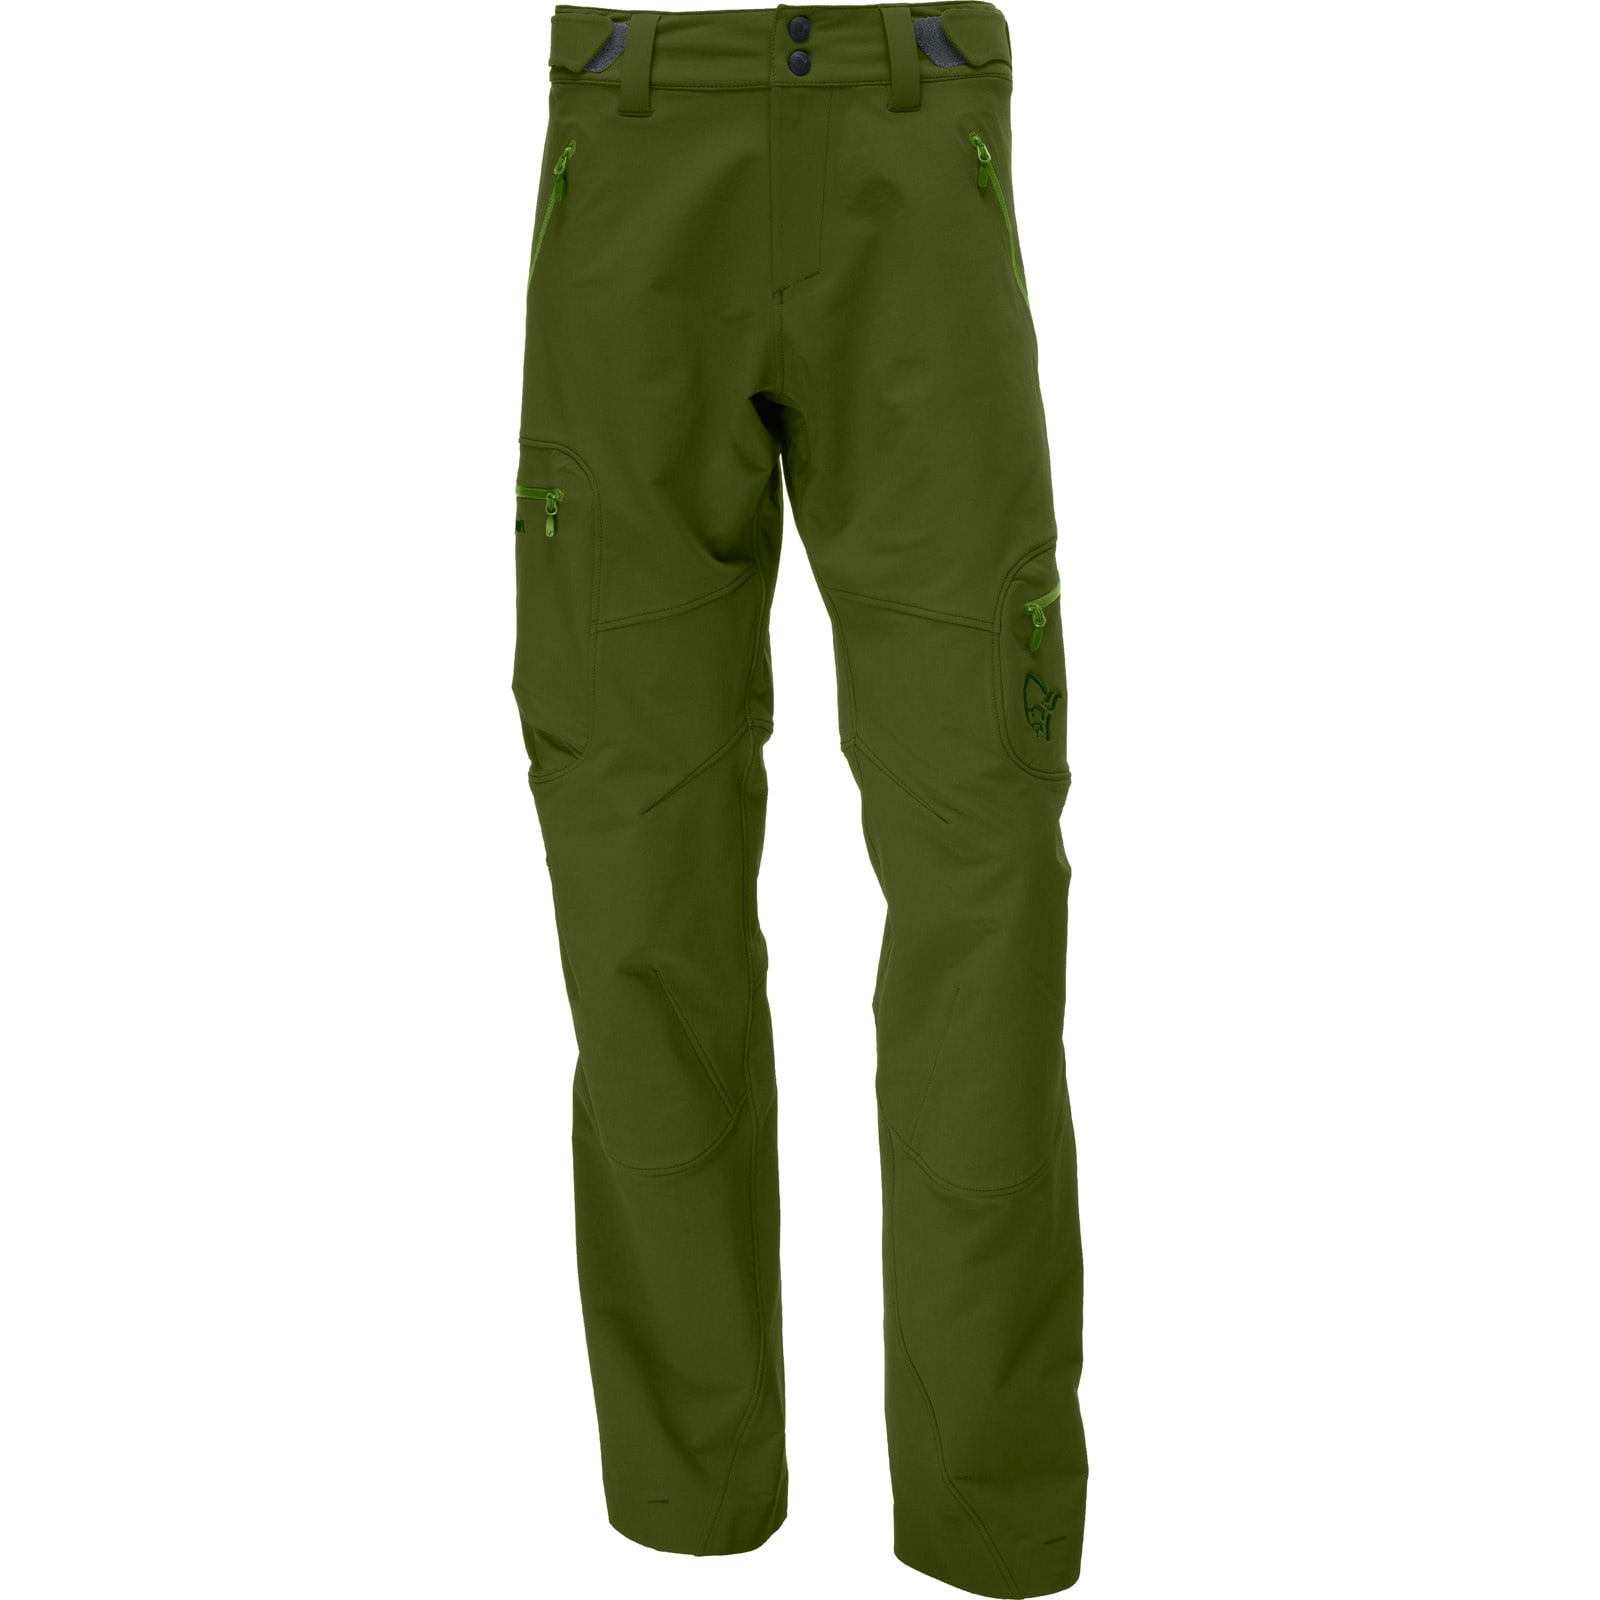 2f938ee6 Buy Norrøna Svalbard Flex1 Pants Men's from Outnorth